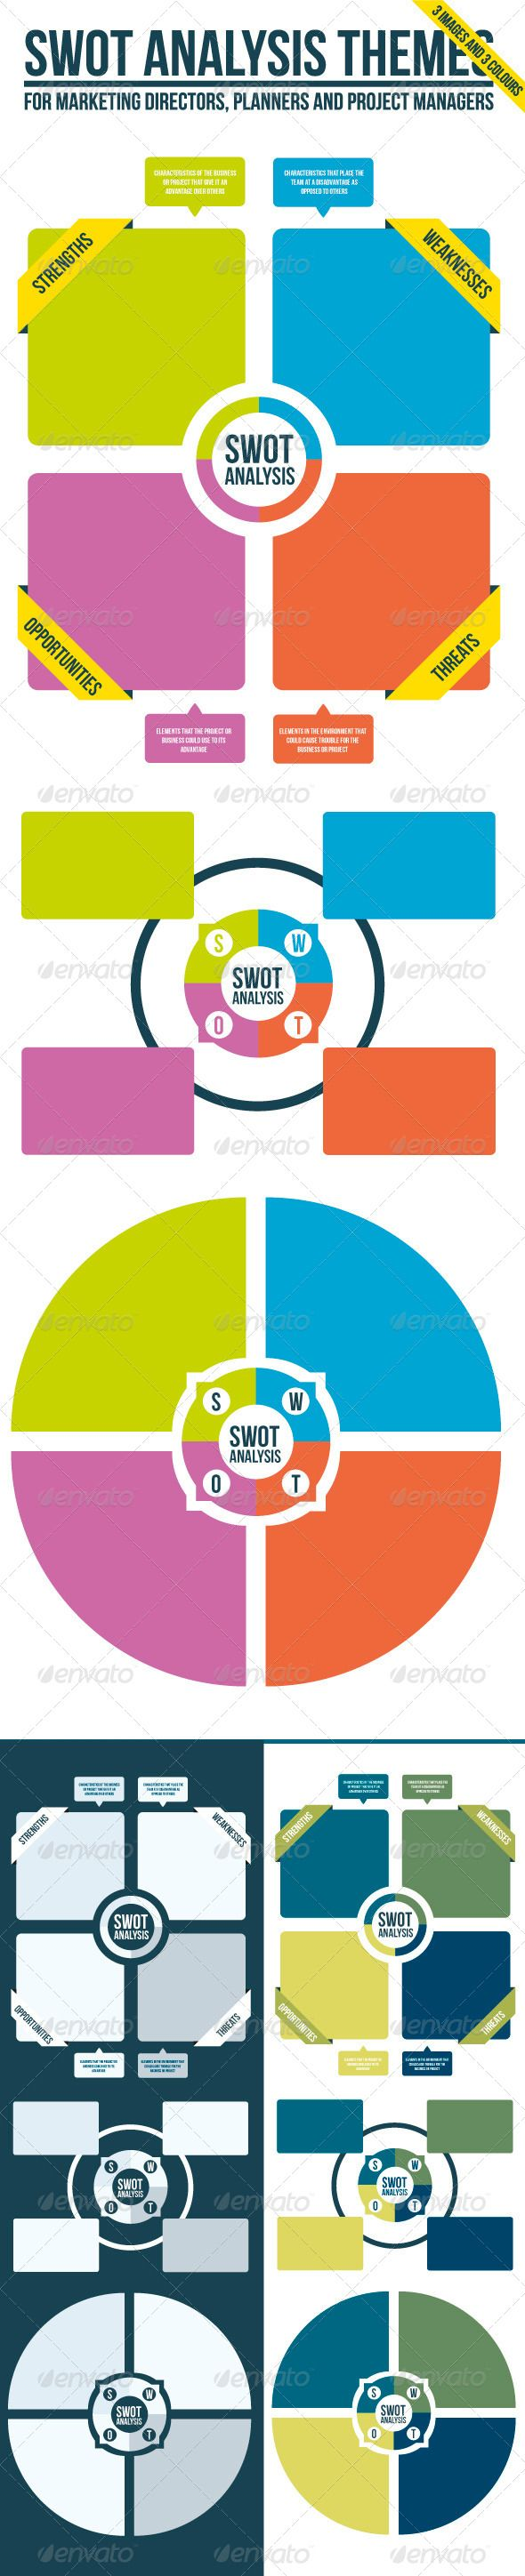 best images about strengths weaknesses swot analysis theme x 3 swot analysis is the famous strengths and weaknesses analysis planning